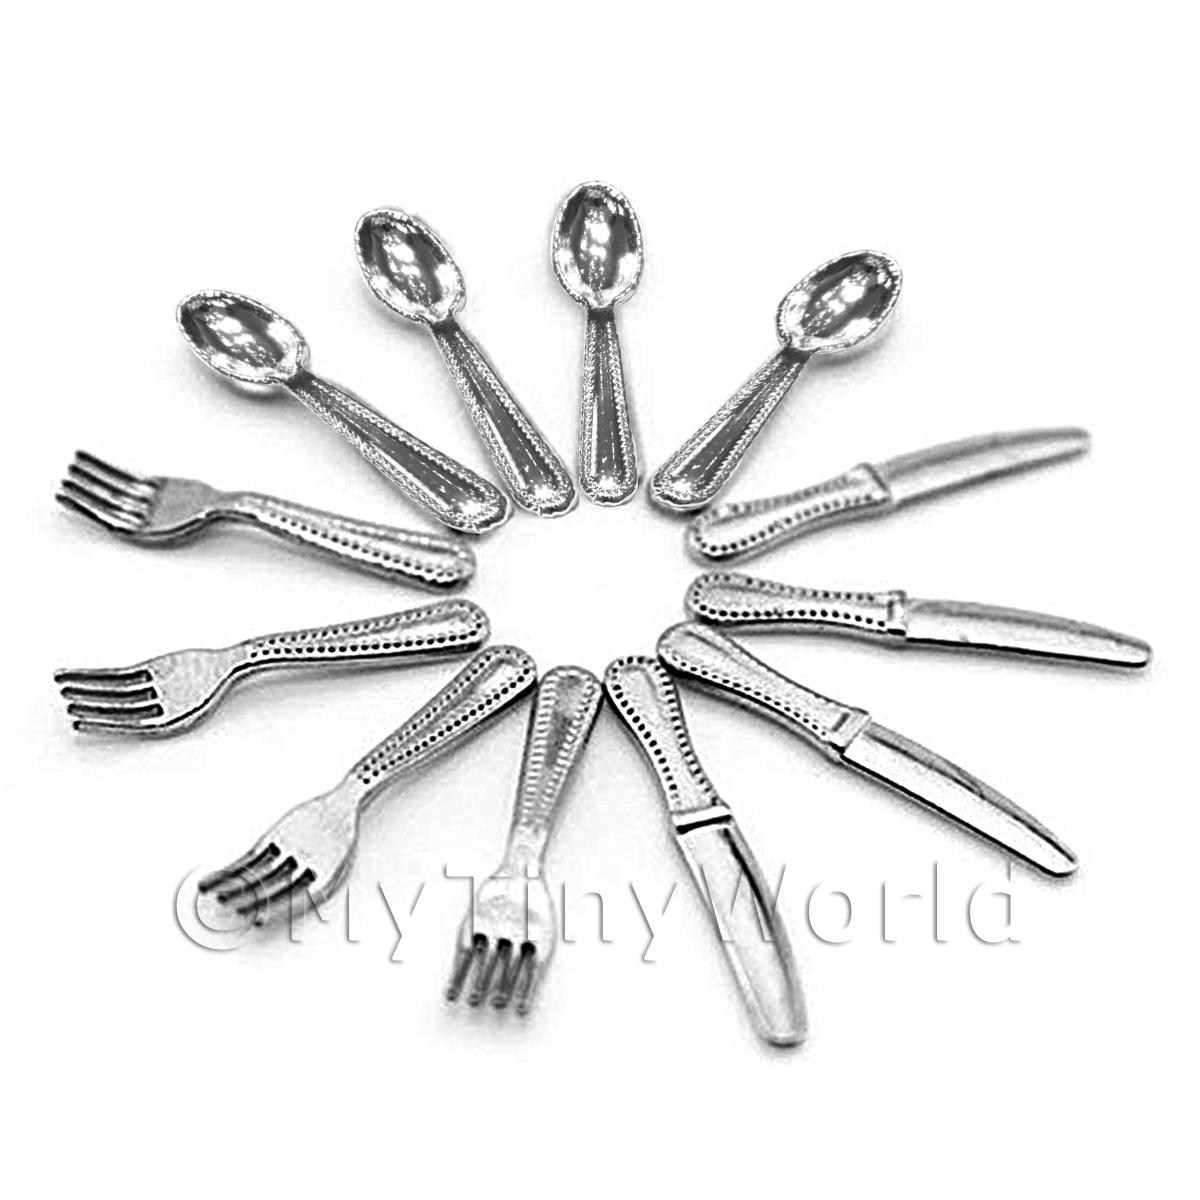 Dolls House Miniature  | 4 Complete Sets Of Dolls House Miniature Metal Cutlery - 12 Pieces